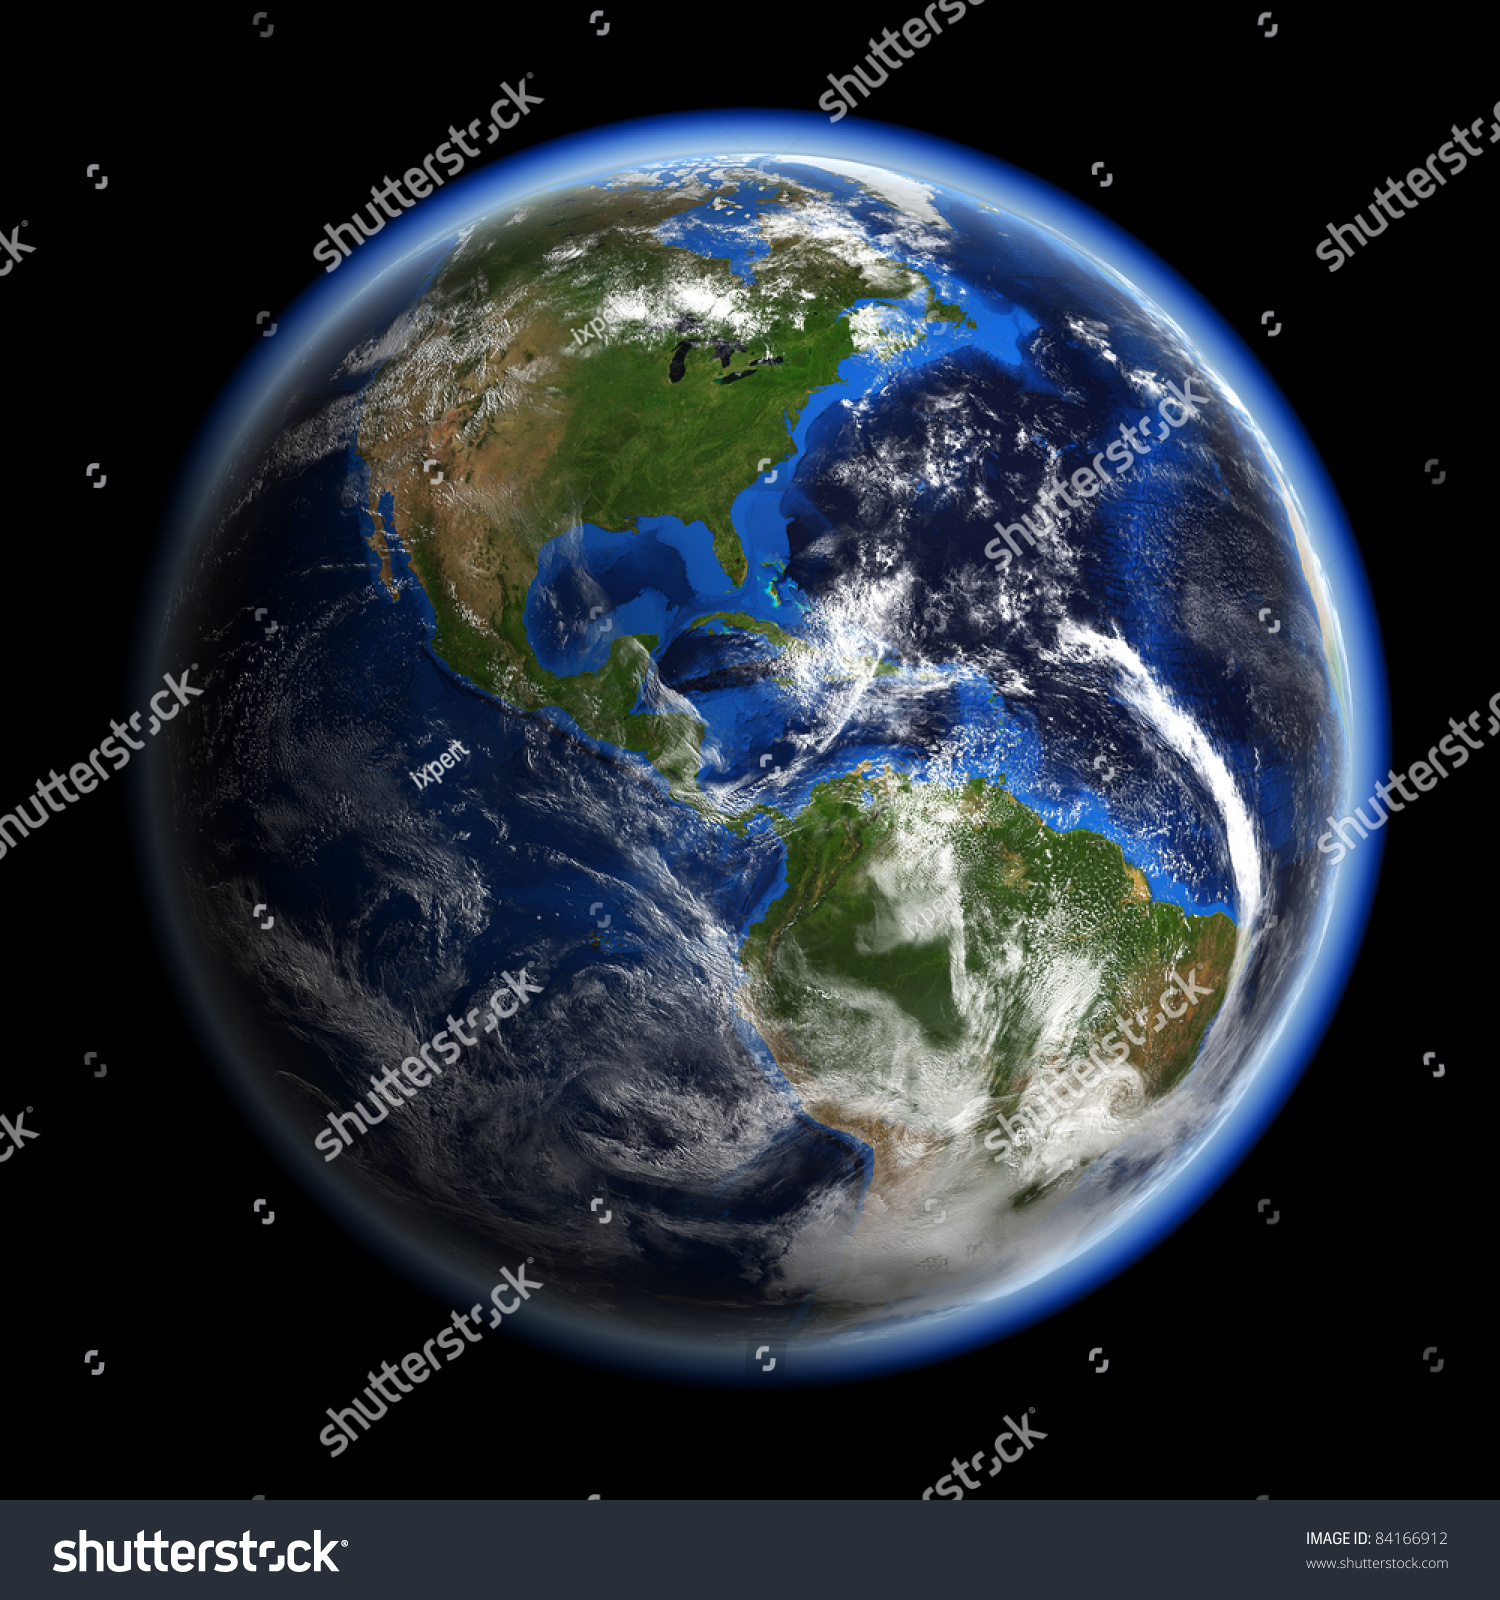 america under clouds earth space model stock illustration